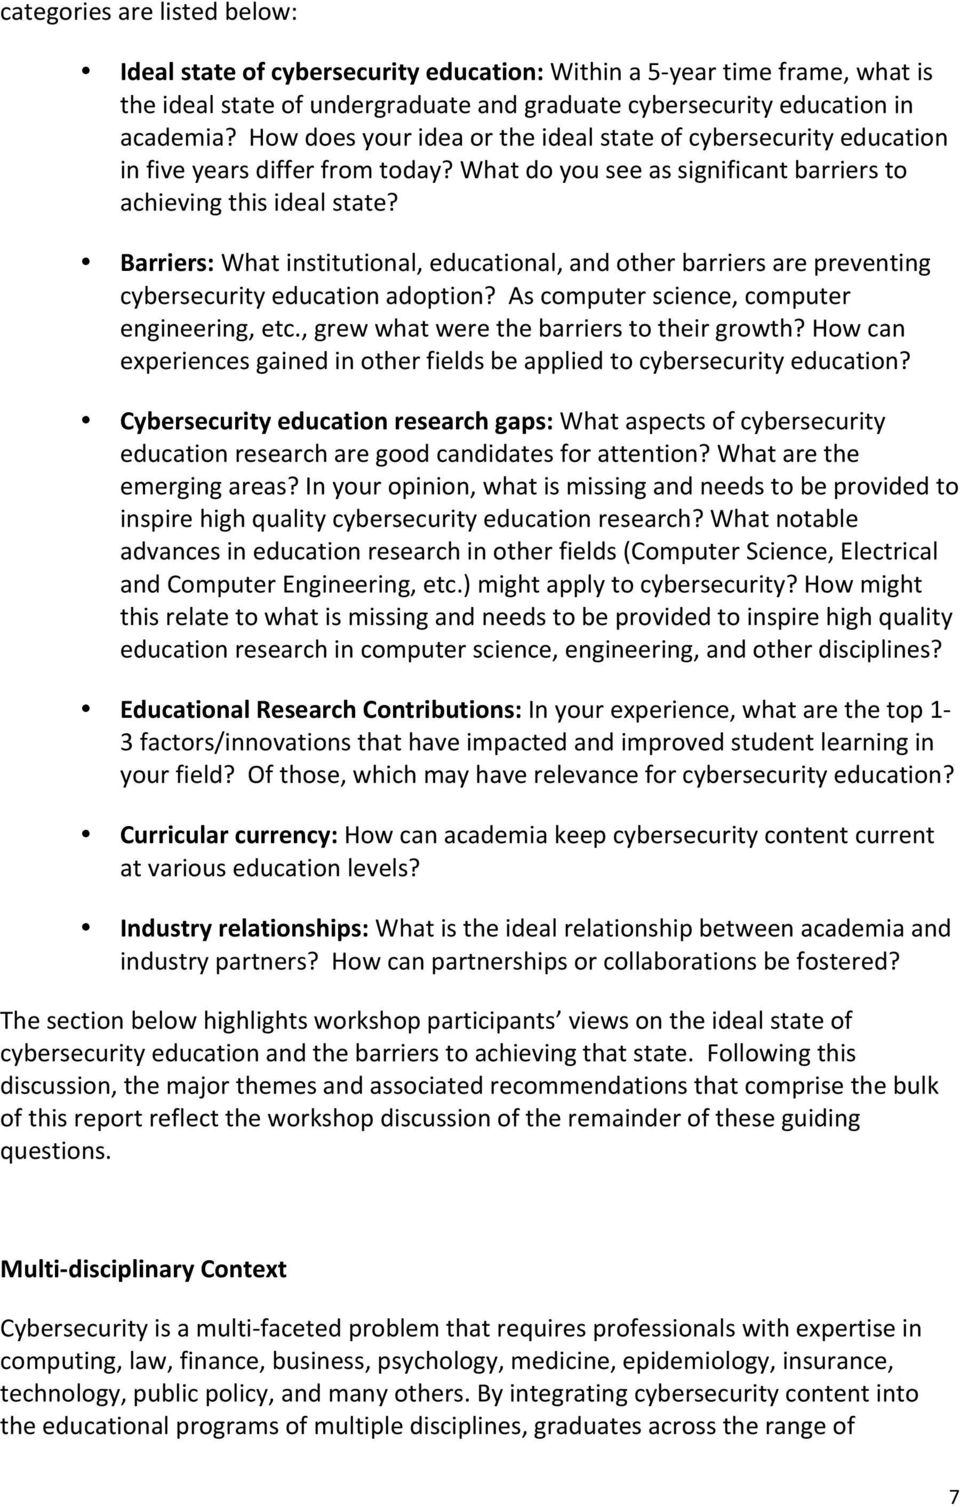 Barriers: What institutional, educational, and other barriers are preventing cybersecurity education adoption? As computer science, computer engineering, etc.